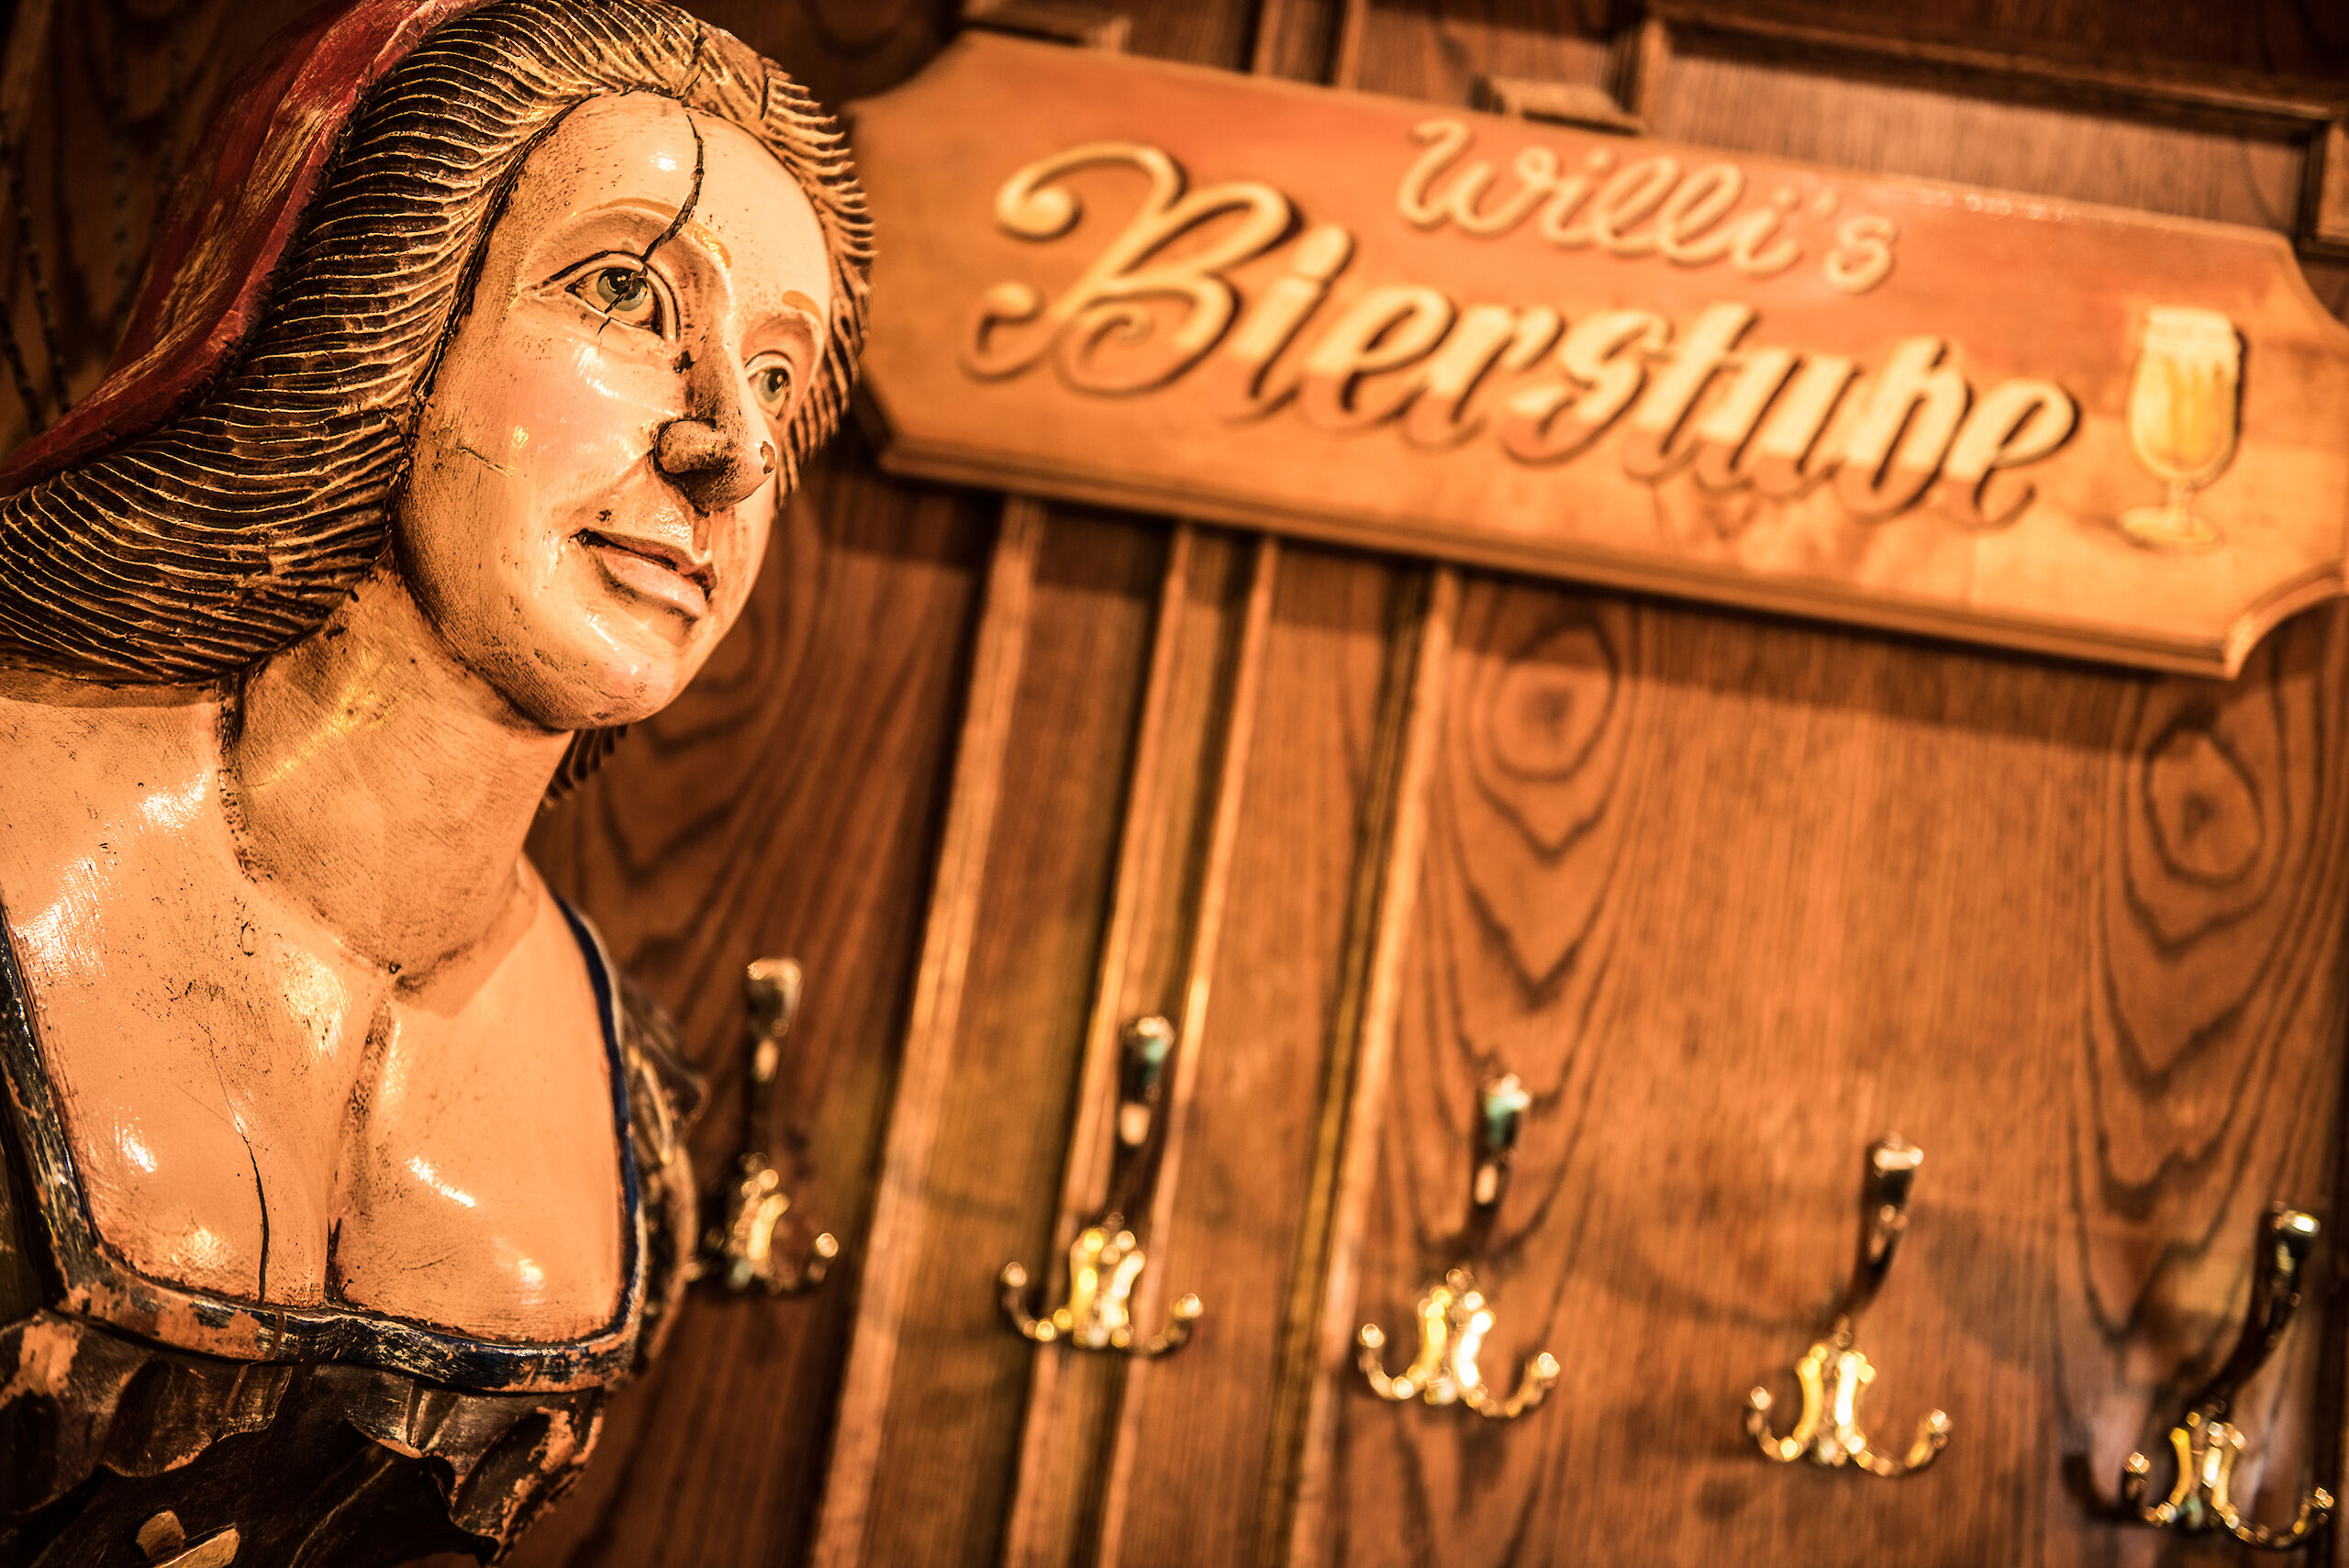 A wooden board engraved with WILLI'S Bierstube with a female figurehead